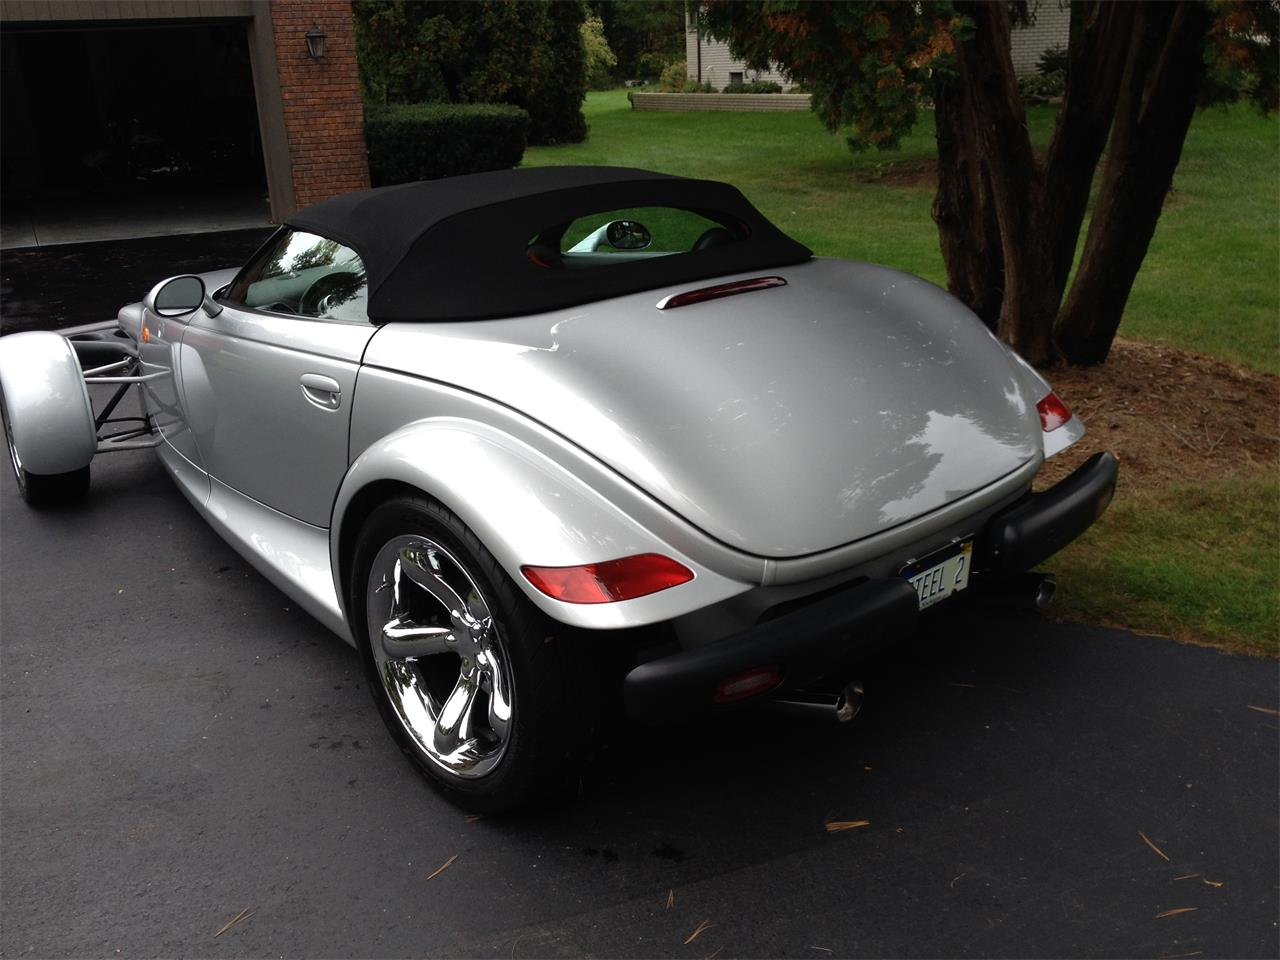 Large Picture of 2000 Plymouth Prowler located in Michigan - $31,900.00 Offered by a Private Seller - F0A7